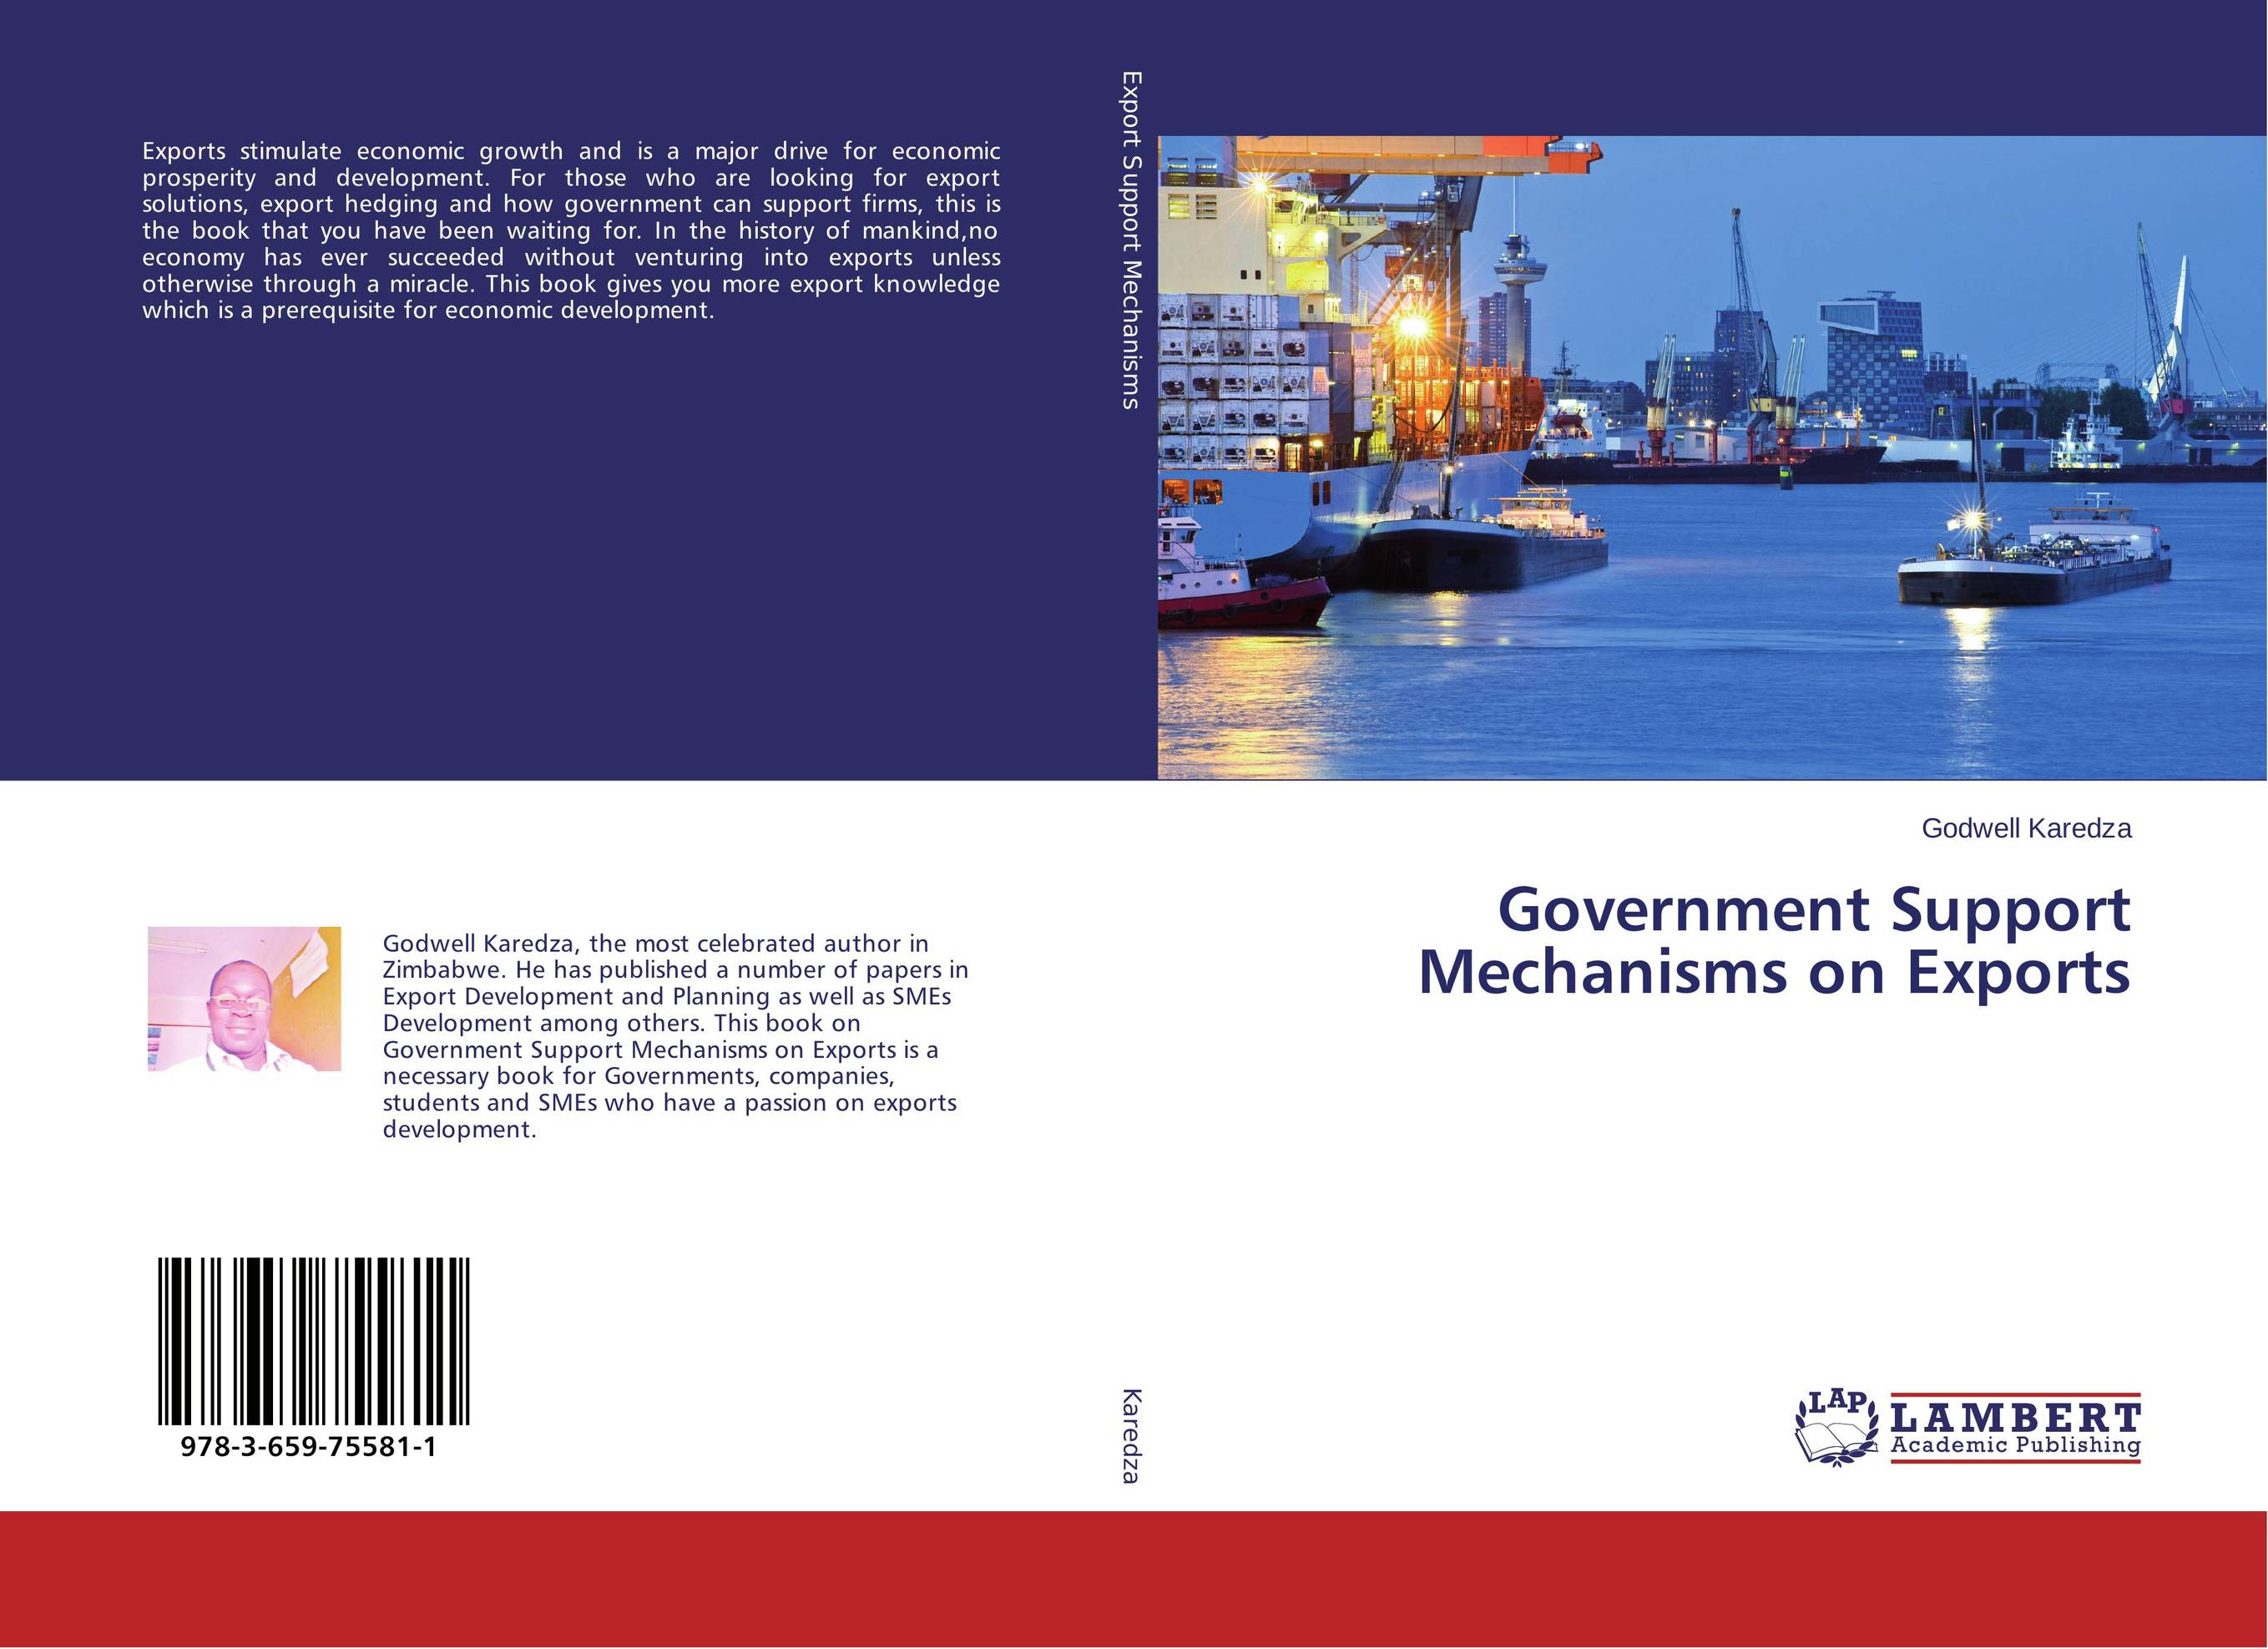 Government Support Mechanisms on Exports